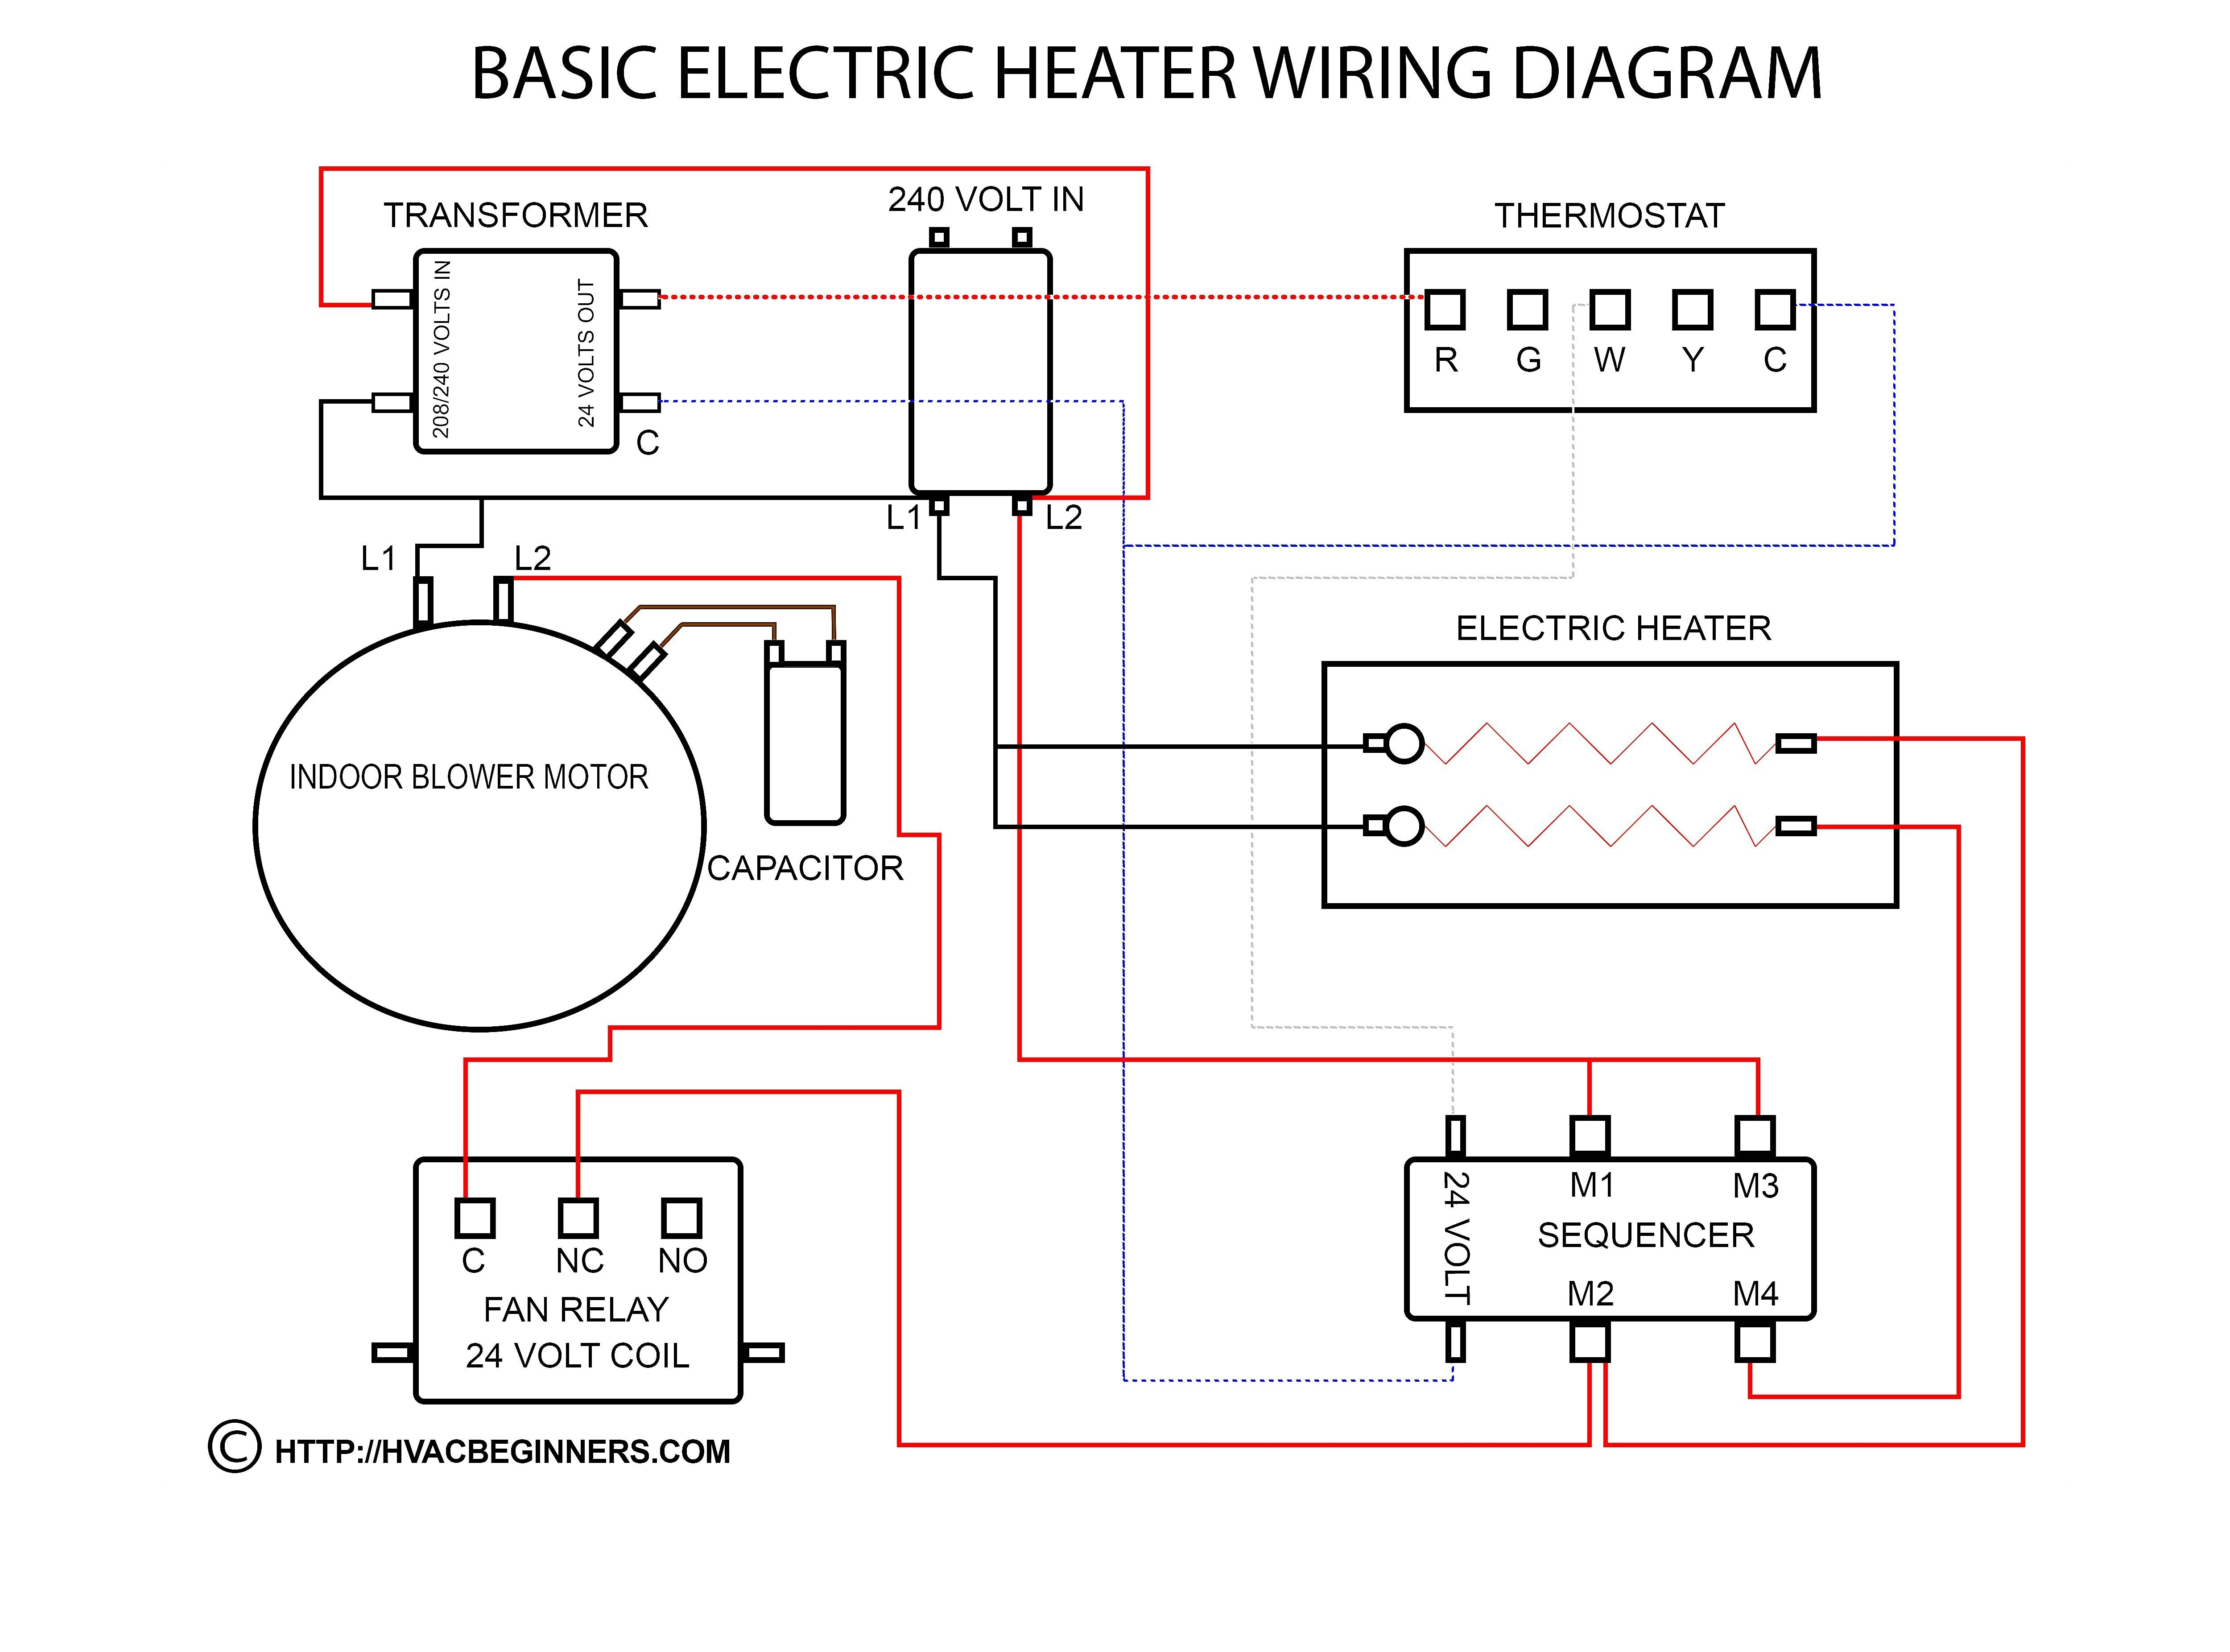 120V Electric Baseboard Thermostat Wiring Diagram | Wiring Library - 240 Volt Heater Wiring Diagram